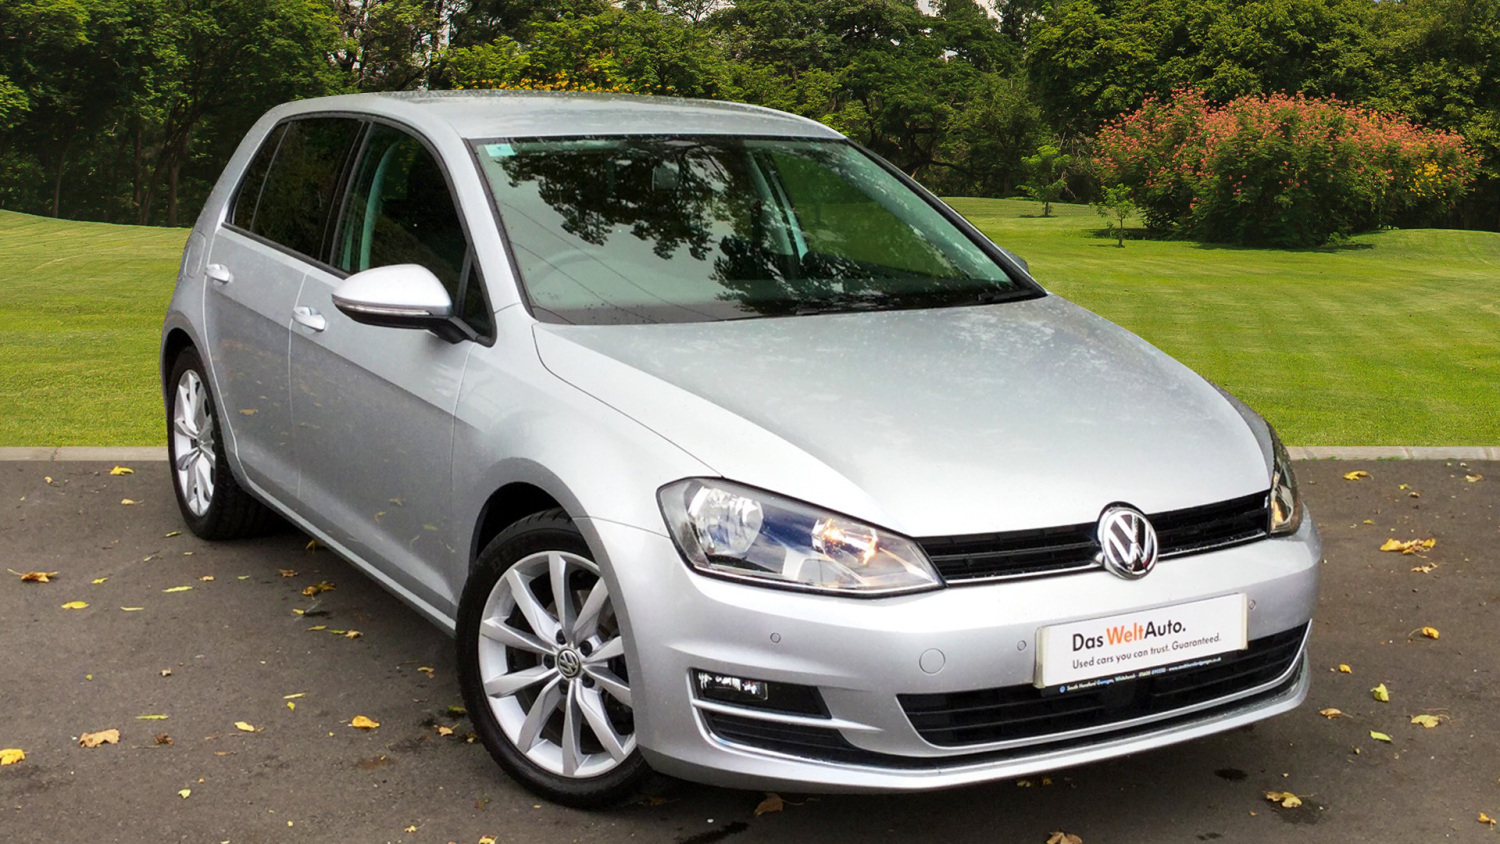 used volkswagen golf 2 0 tdi gt 5dr diesel hatchback for sale in scotland macklin motors. Black Bedroom Furniture Sets. Home Design Ideas